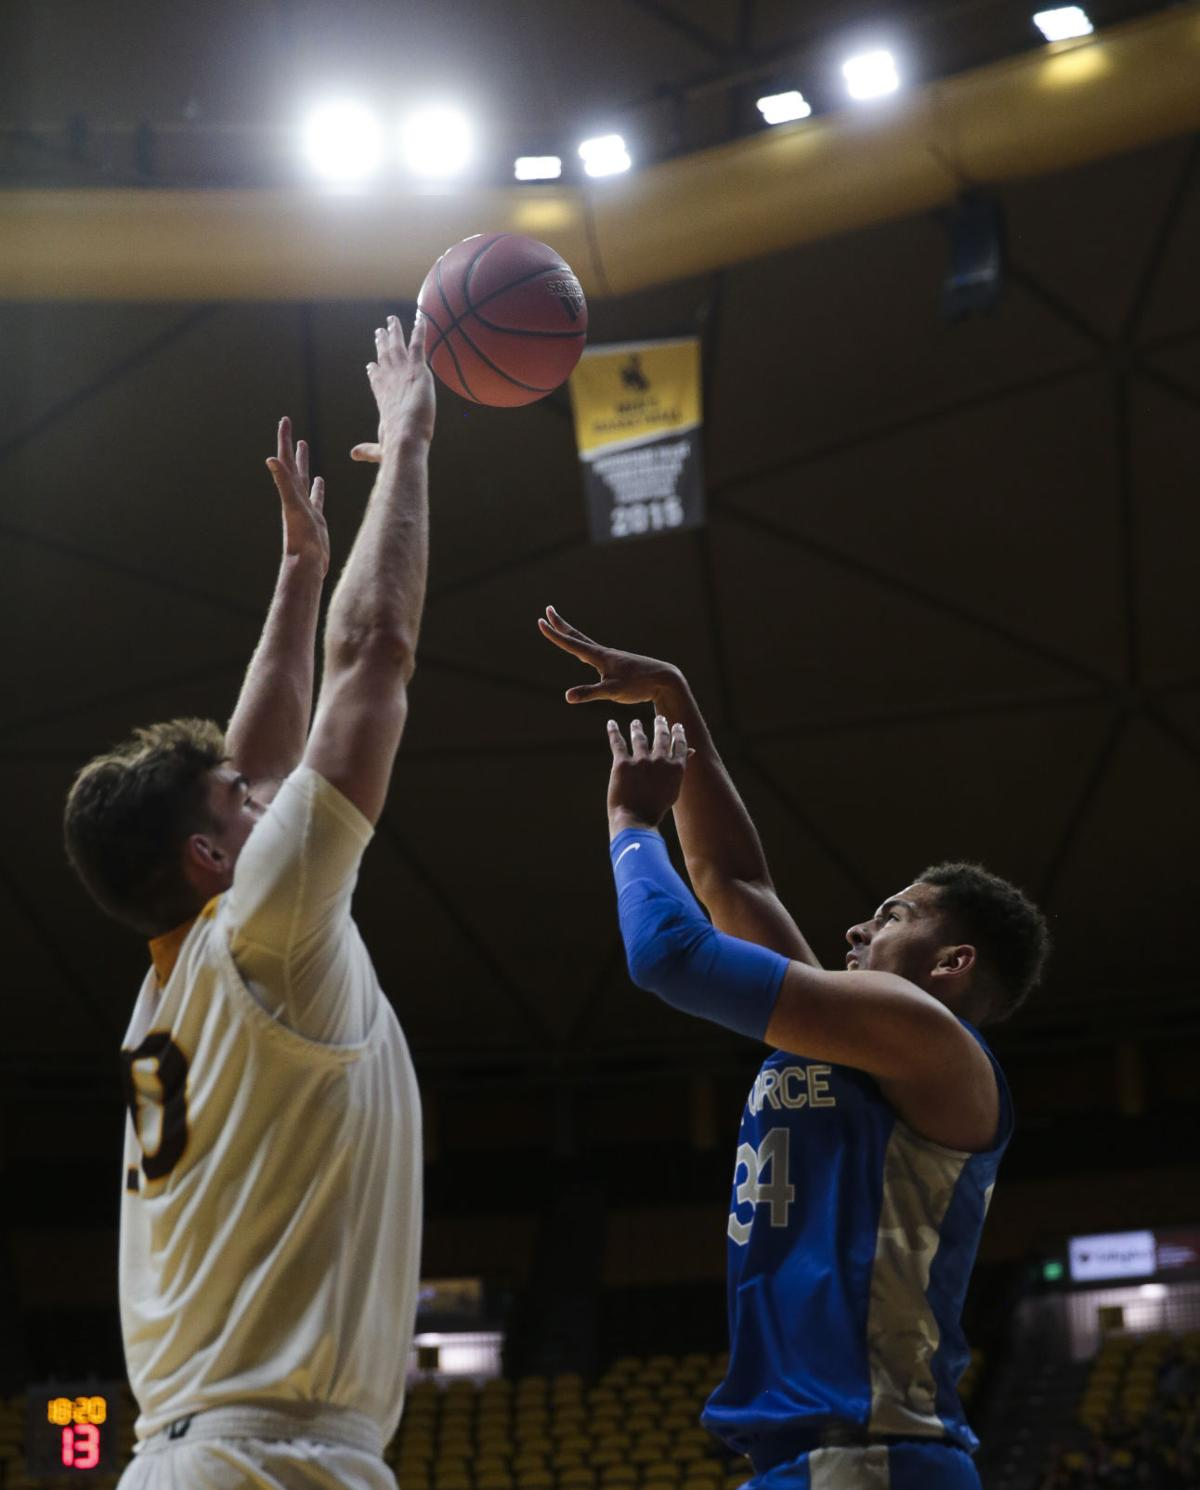 20191205-spts-WyoAFBBall-ns-16.JPG